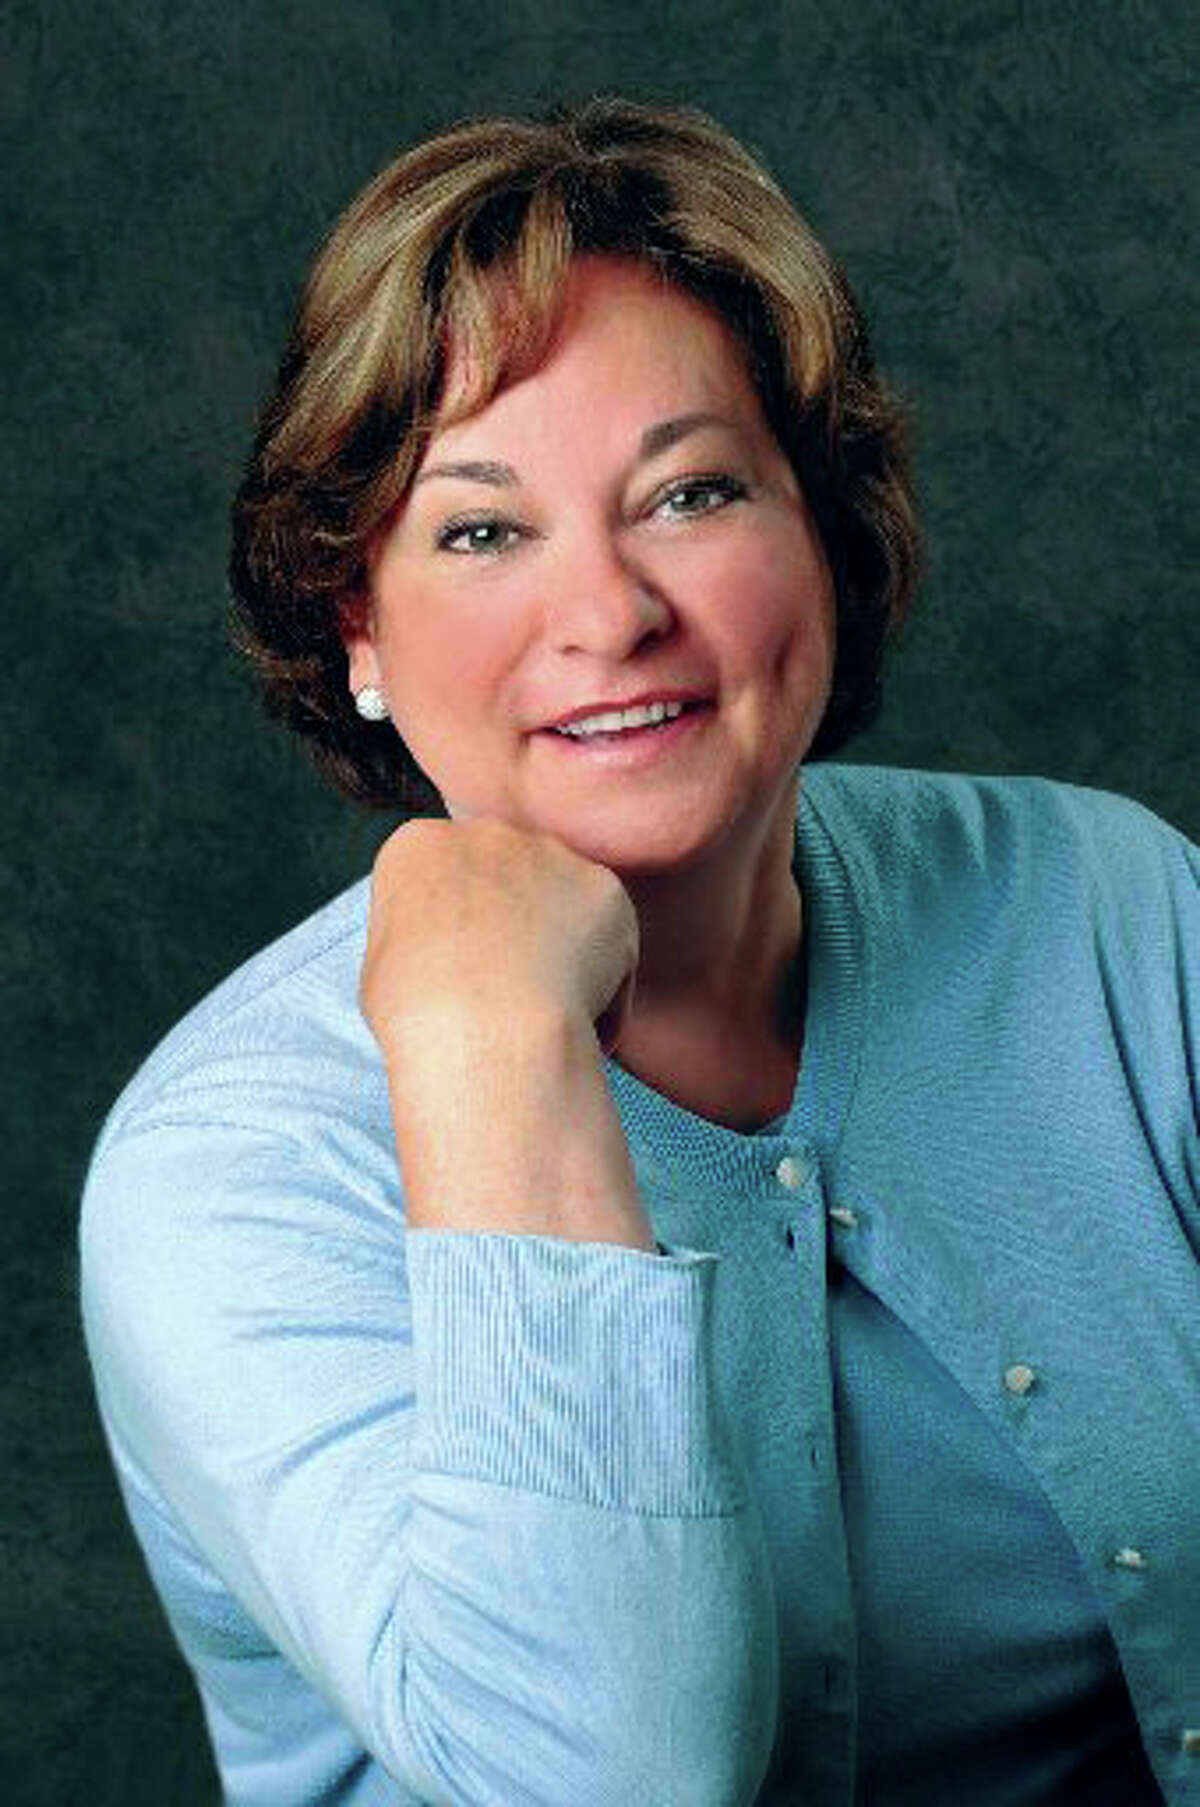 Kathy McShane, of New Canaan, the managing director of Ladies Who Launch in Connecticut, will receive an EmpowerHer Award for excellence.